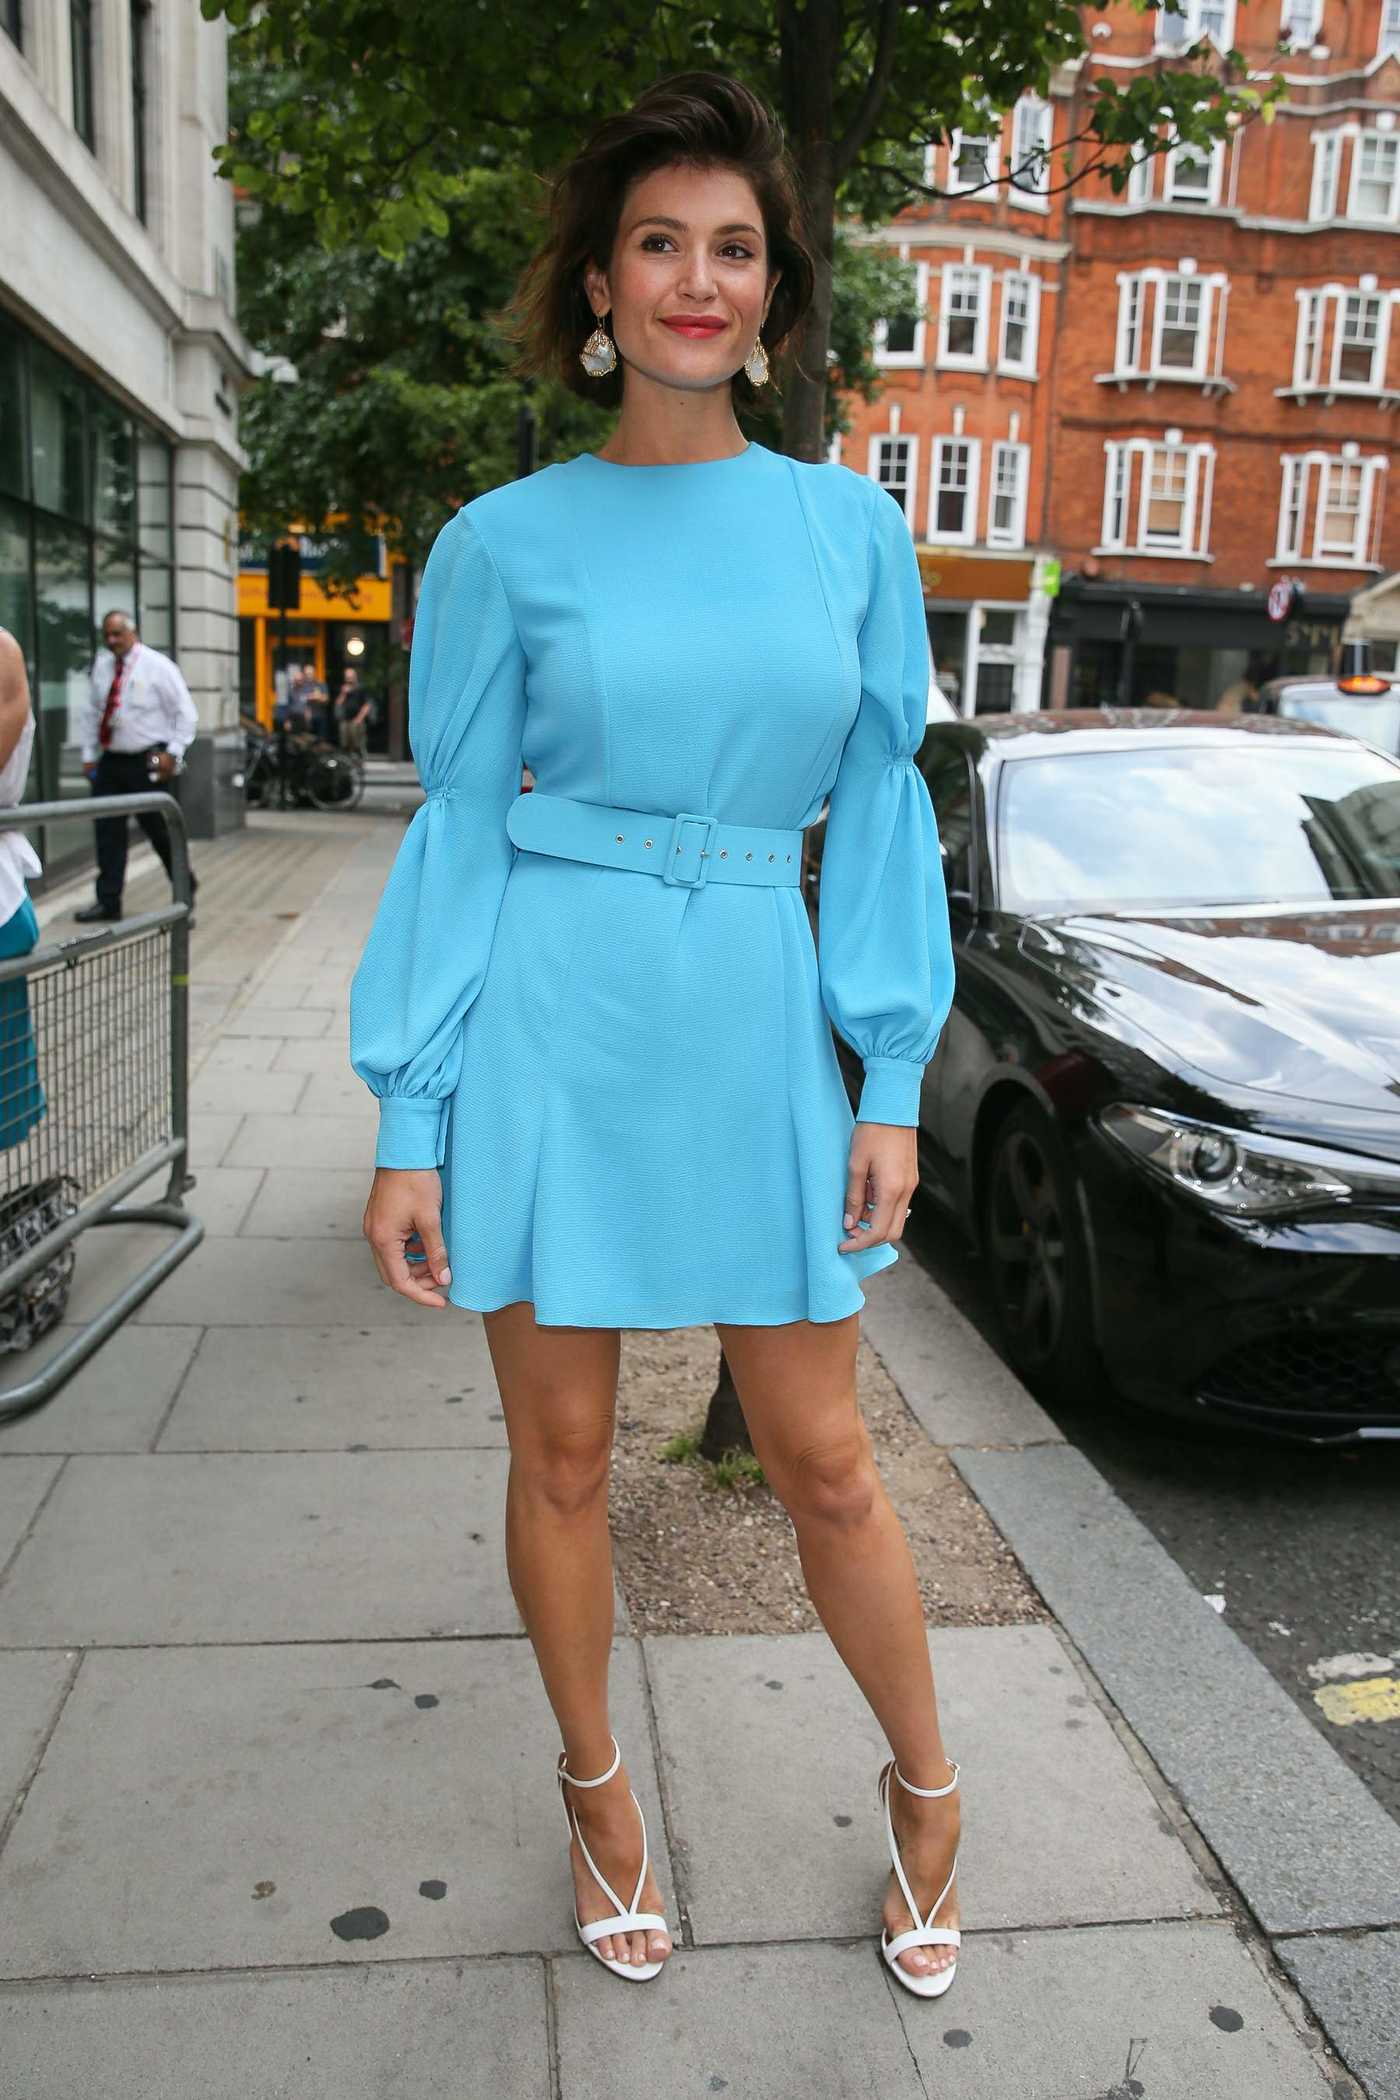 Gemma Arterton Wears a Short Turquoise Dress as She Arrives at BBC Radio Two Studios in London 07/20/2018